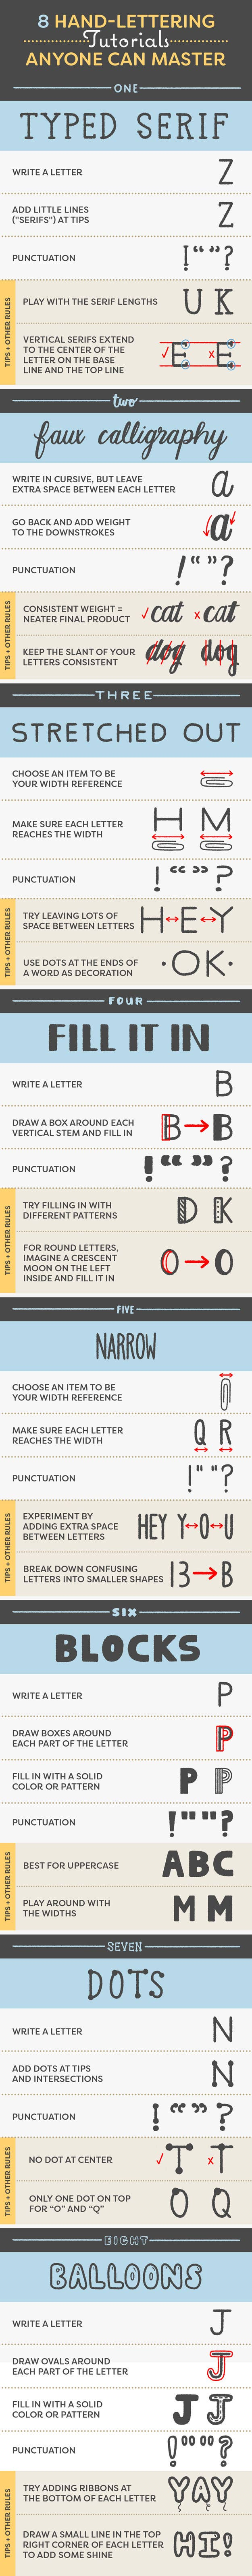 There Are These Tutorials Three Steps Or Fewer Can Be Done With Any Pen Pencil And Require No Artistic Skill